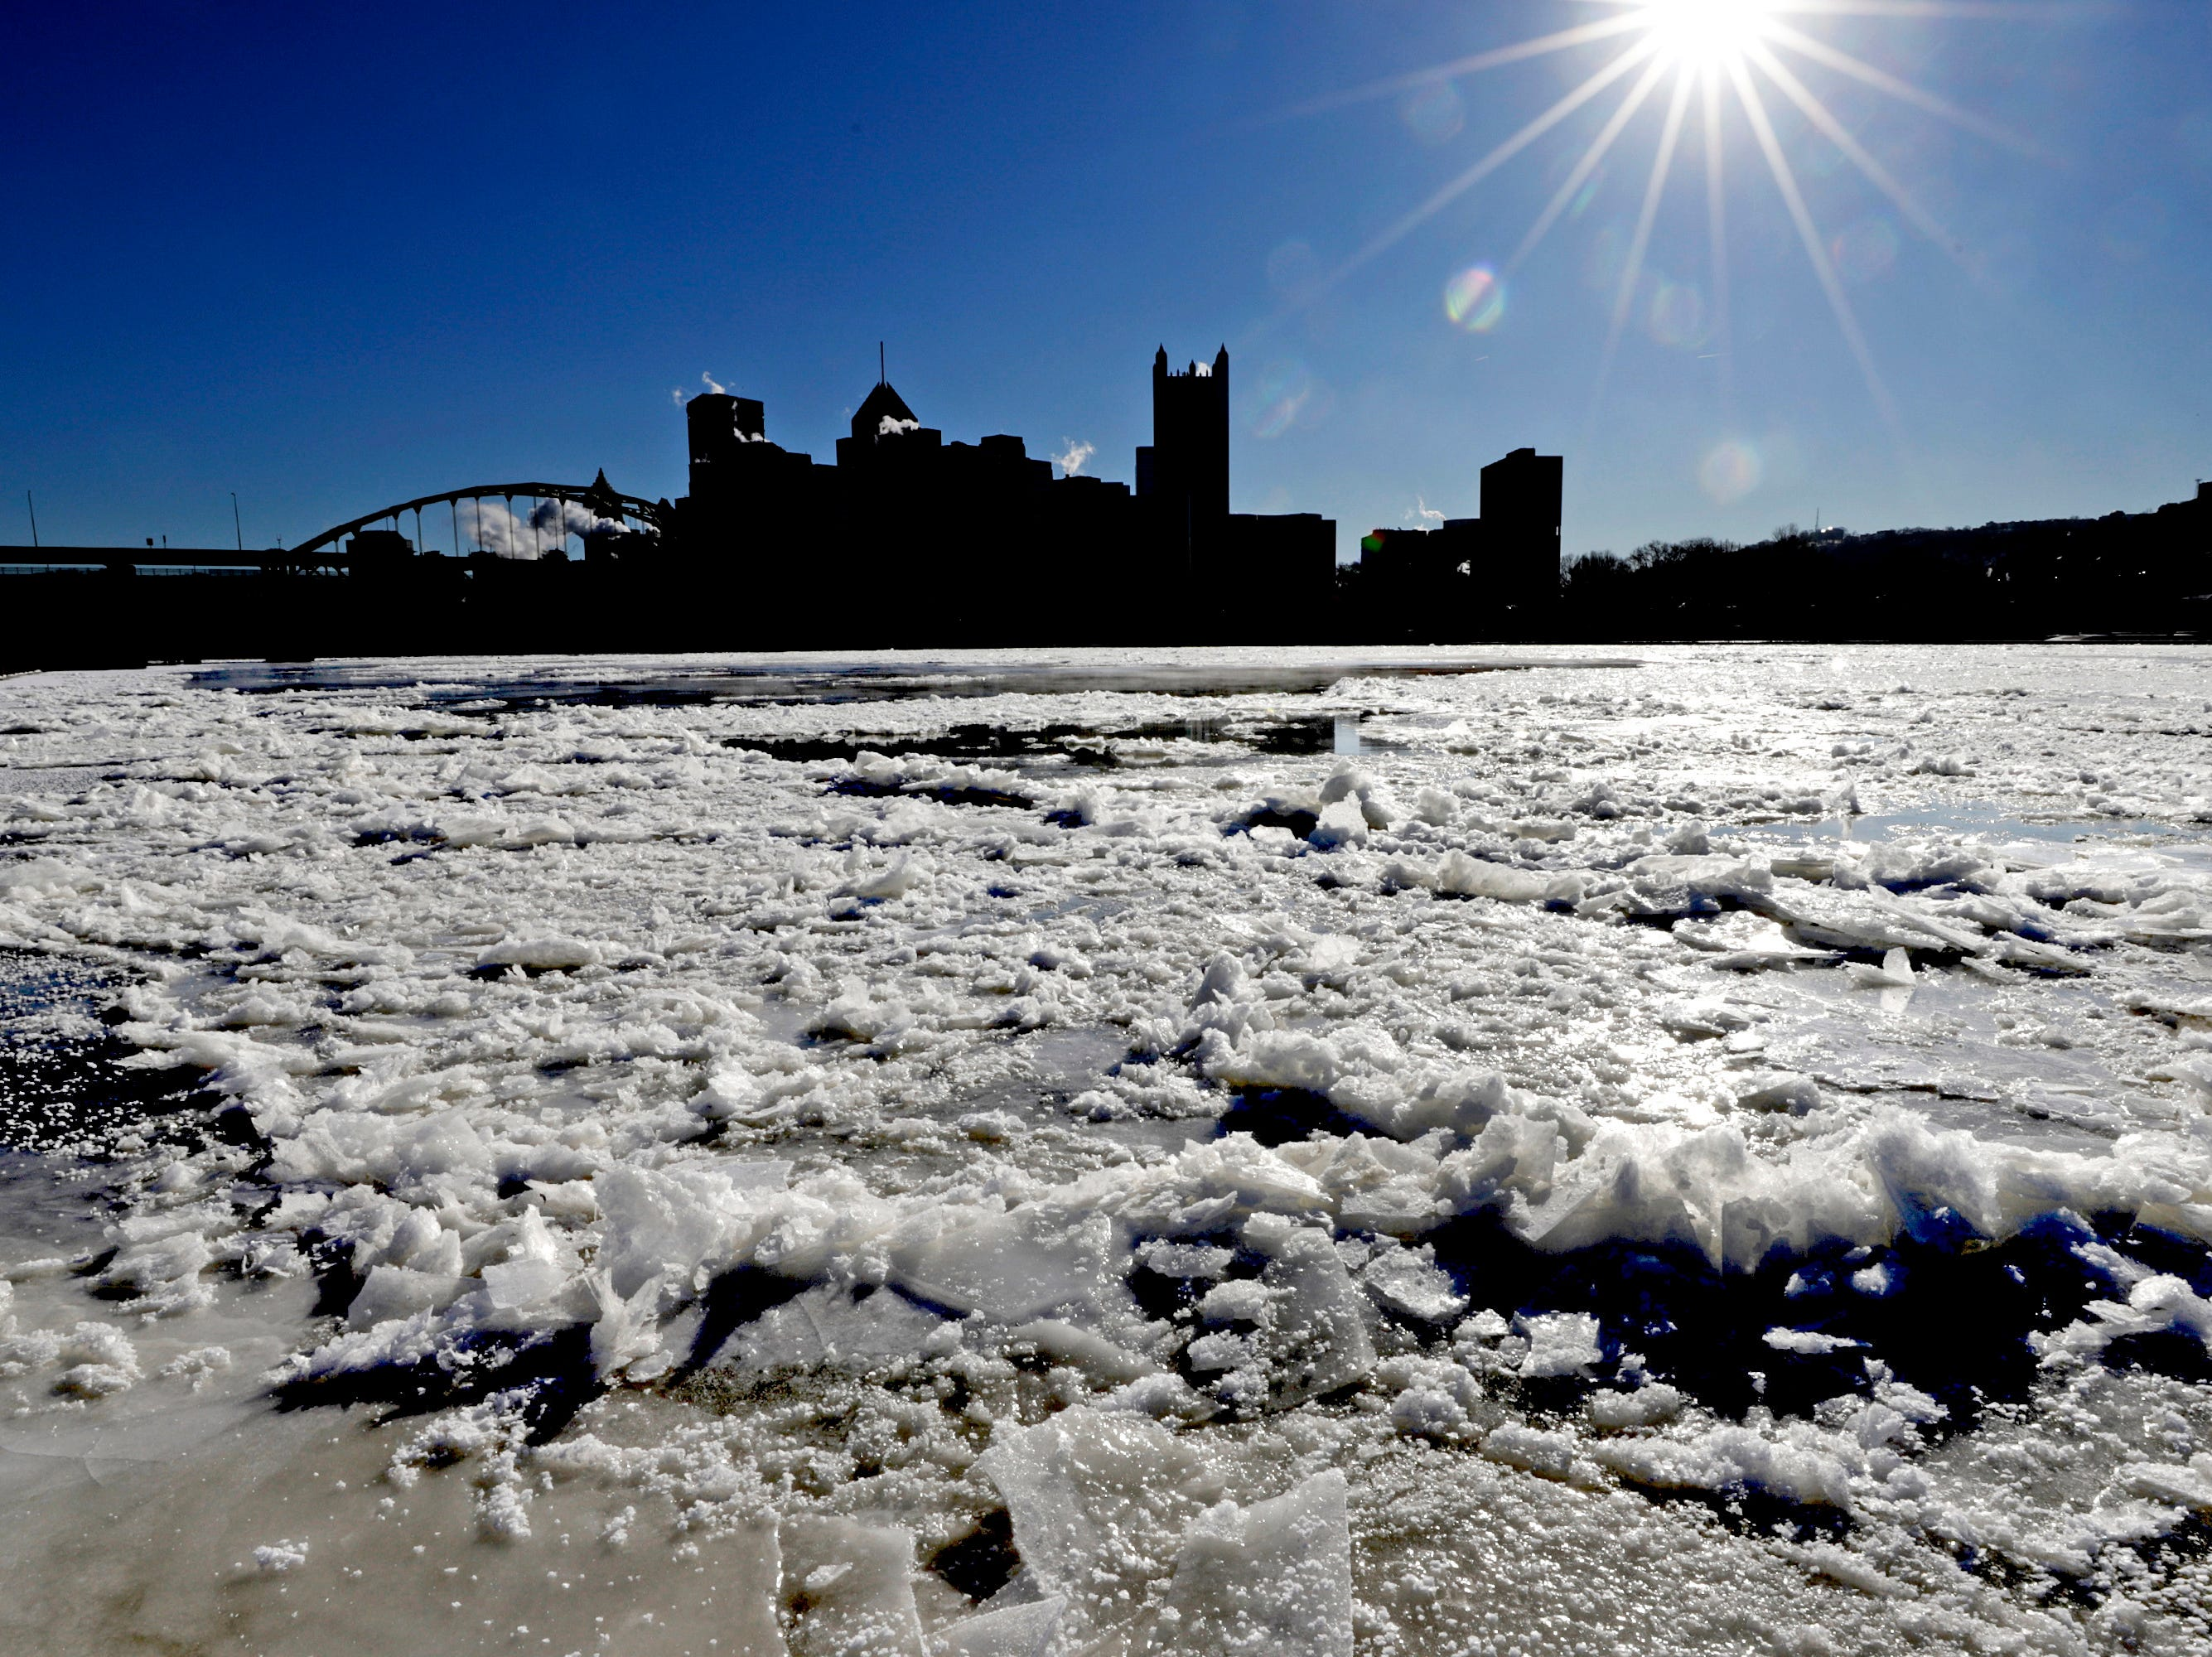 The sun rises over downtown Pittsburgh and a partially frozen Allegheny River on Thursday, Jan 31, 2019. The temperature in Pittsburgh dropped to minus 4 late Wednesday, breaking an 85-year-old record low for Jan. 30 of minus 1 degree.